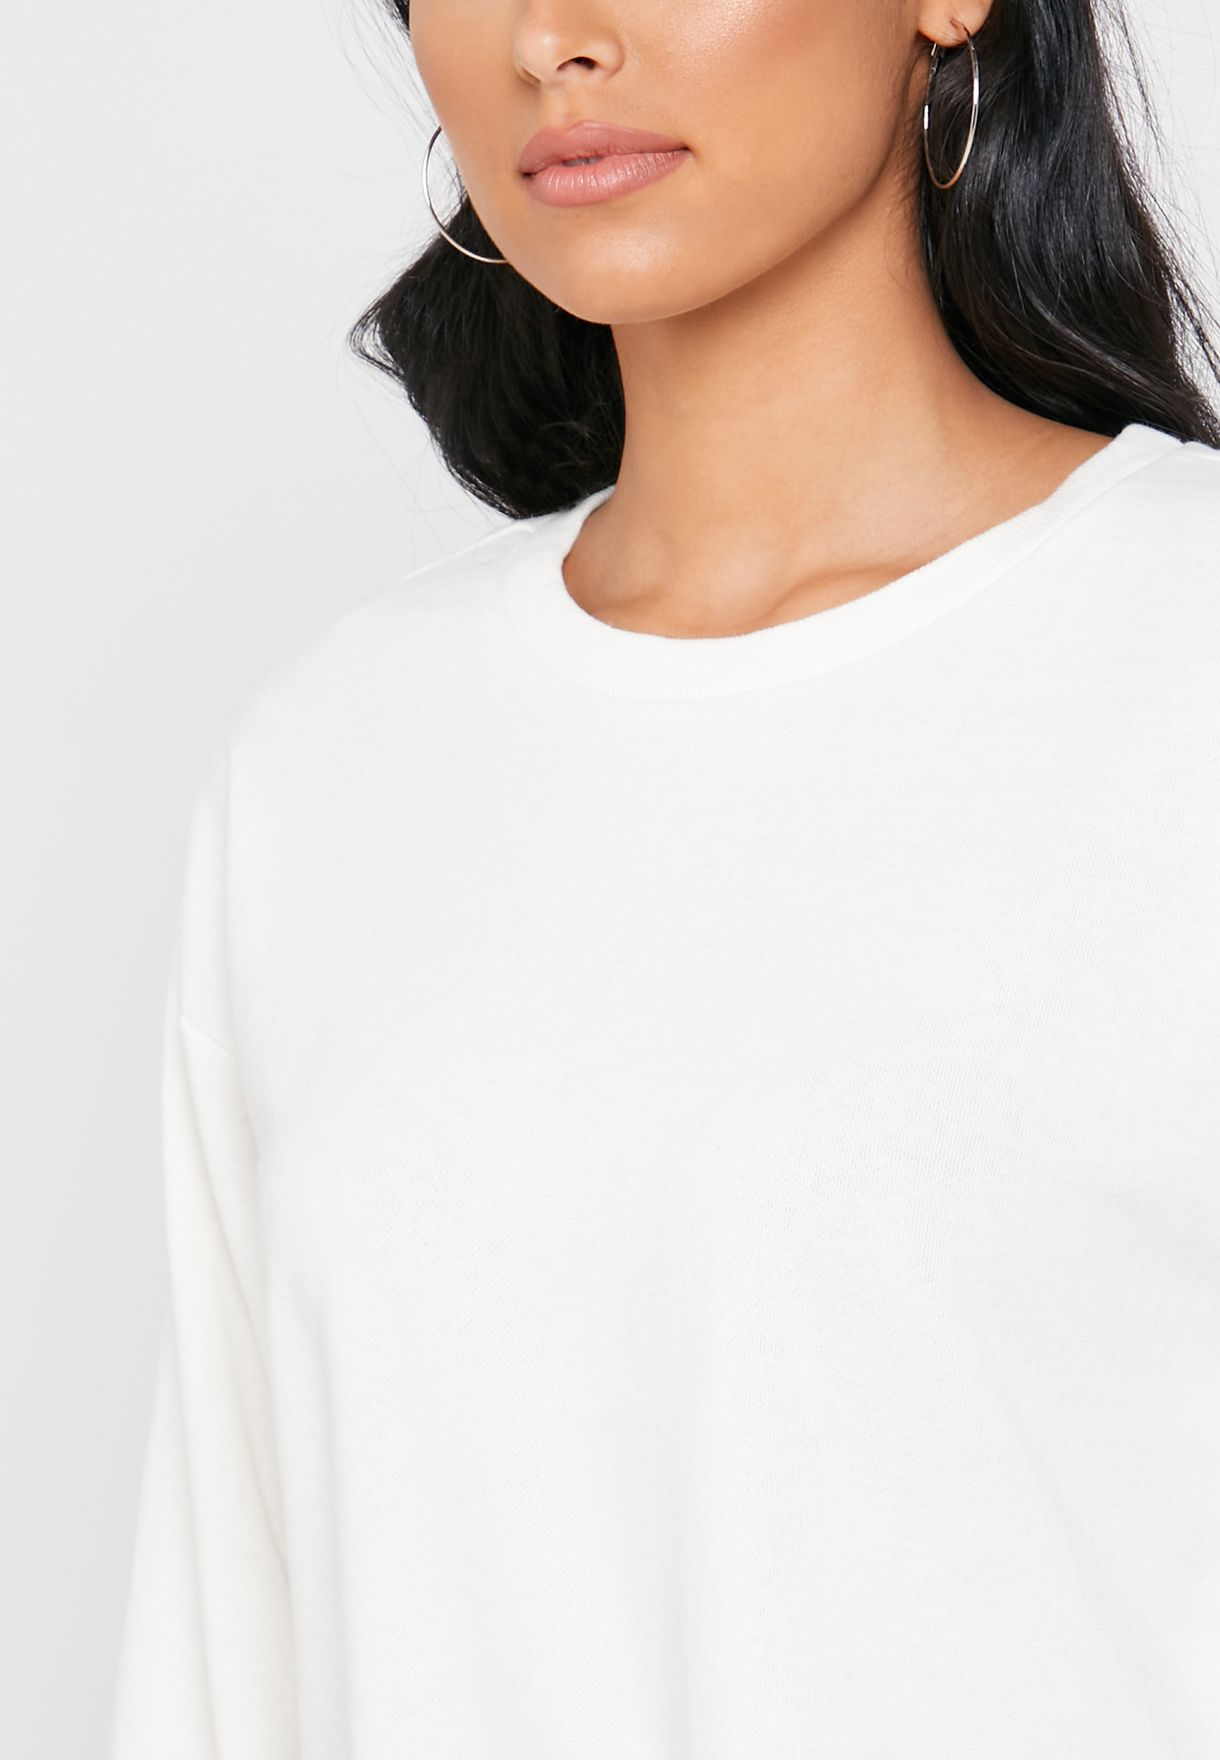 Buy Forever 21 White Cuffed T-shirt For Women, Uae 20008at25qwp